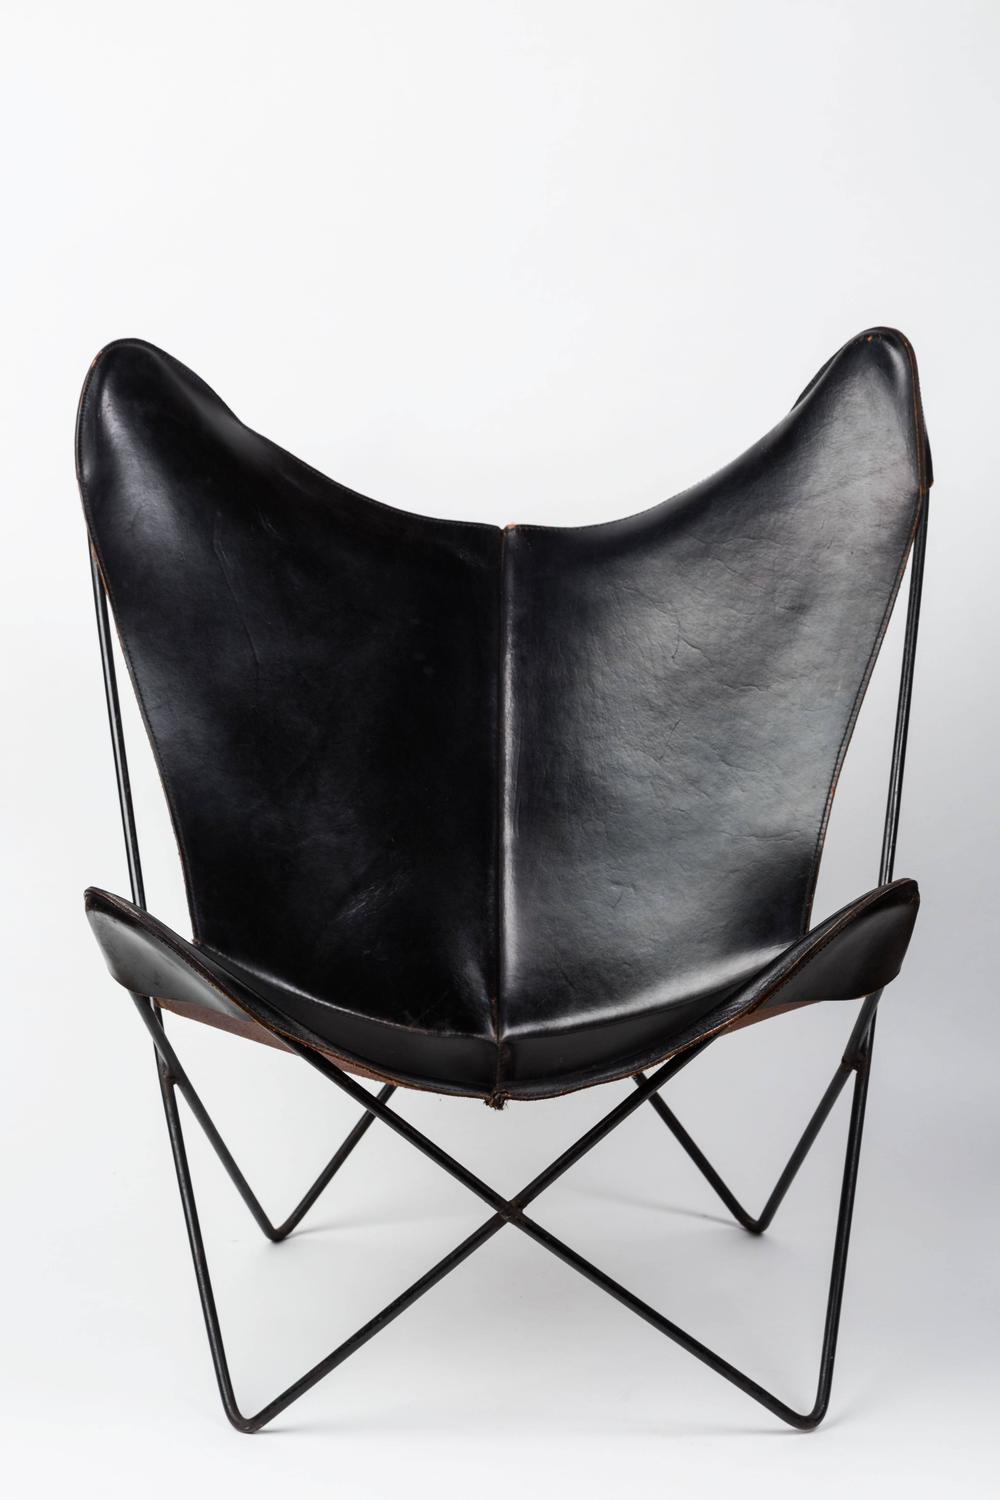 leather butterfly chair by jorge ferrari hardoy for knoll. Black Bedroom Furniture Sets. Home Design Ideas